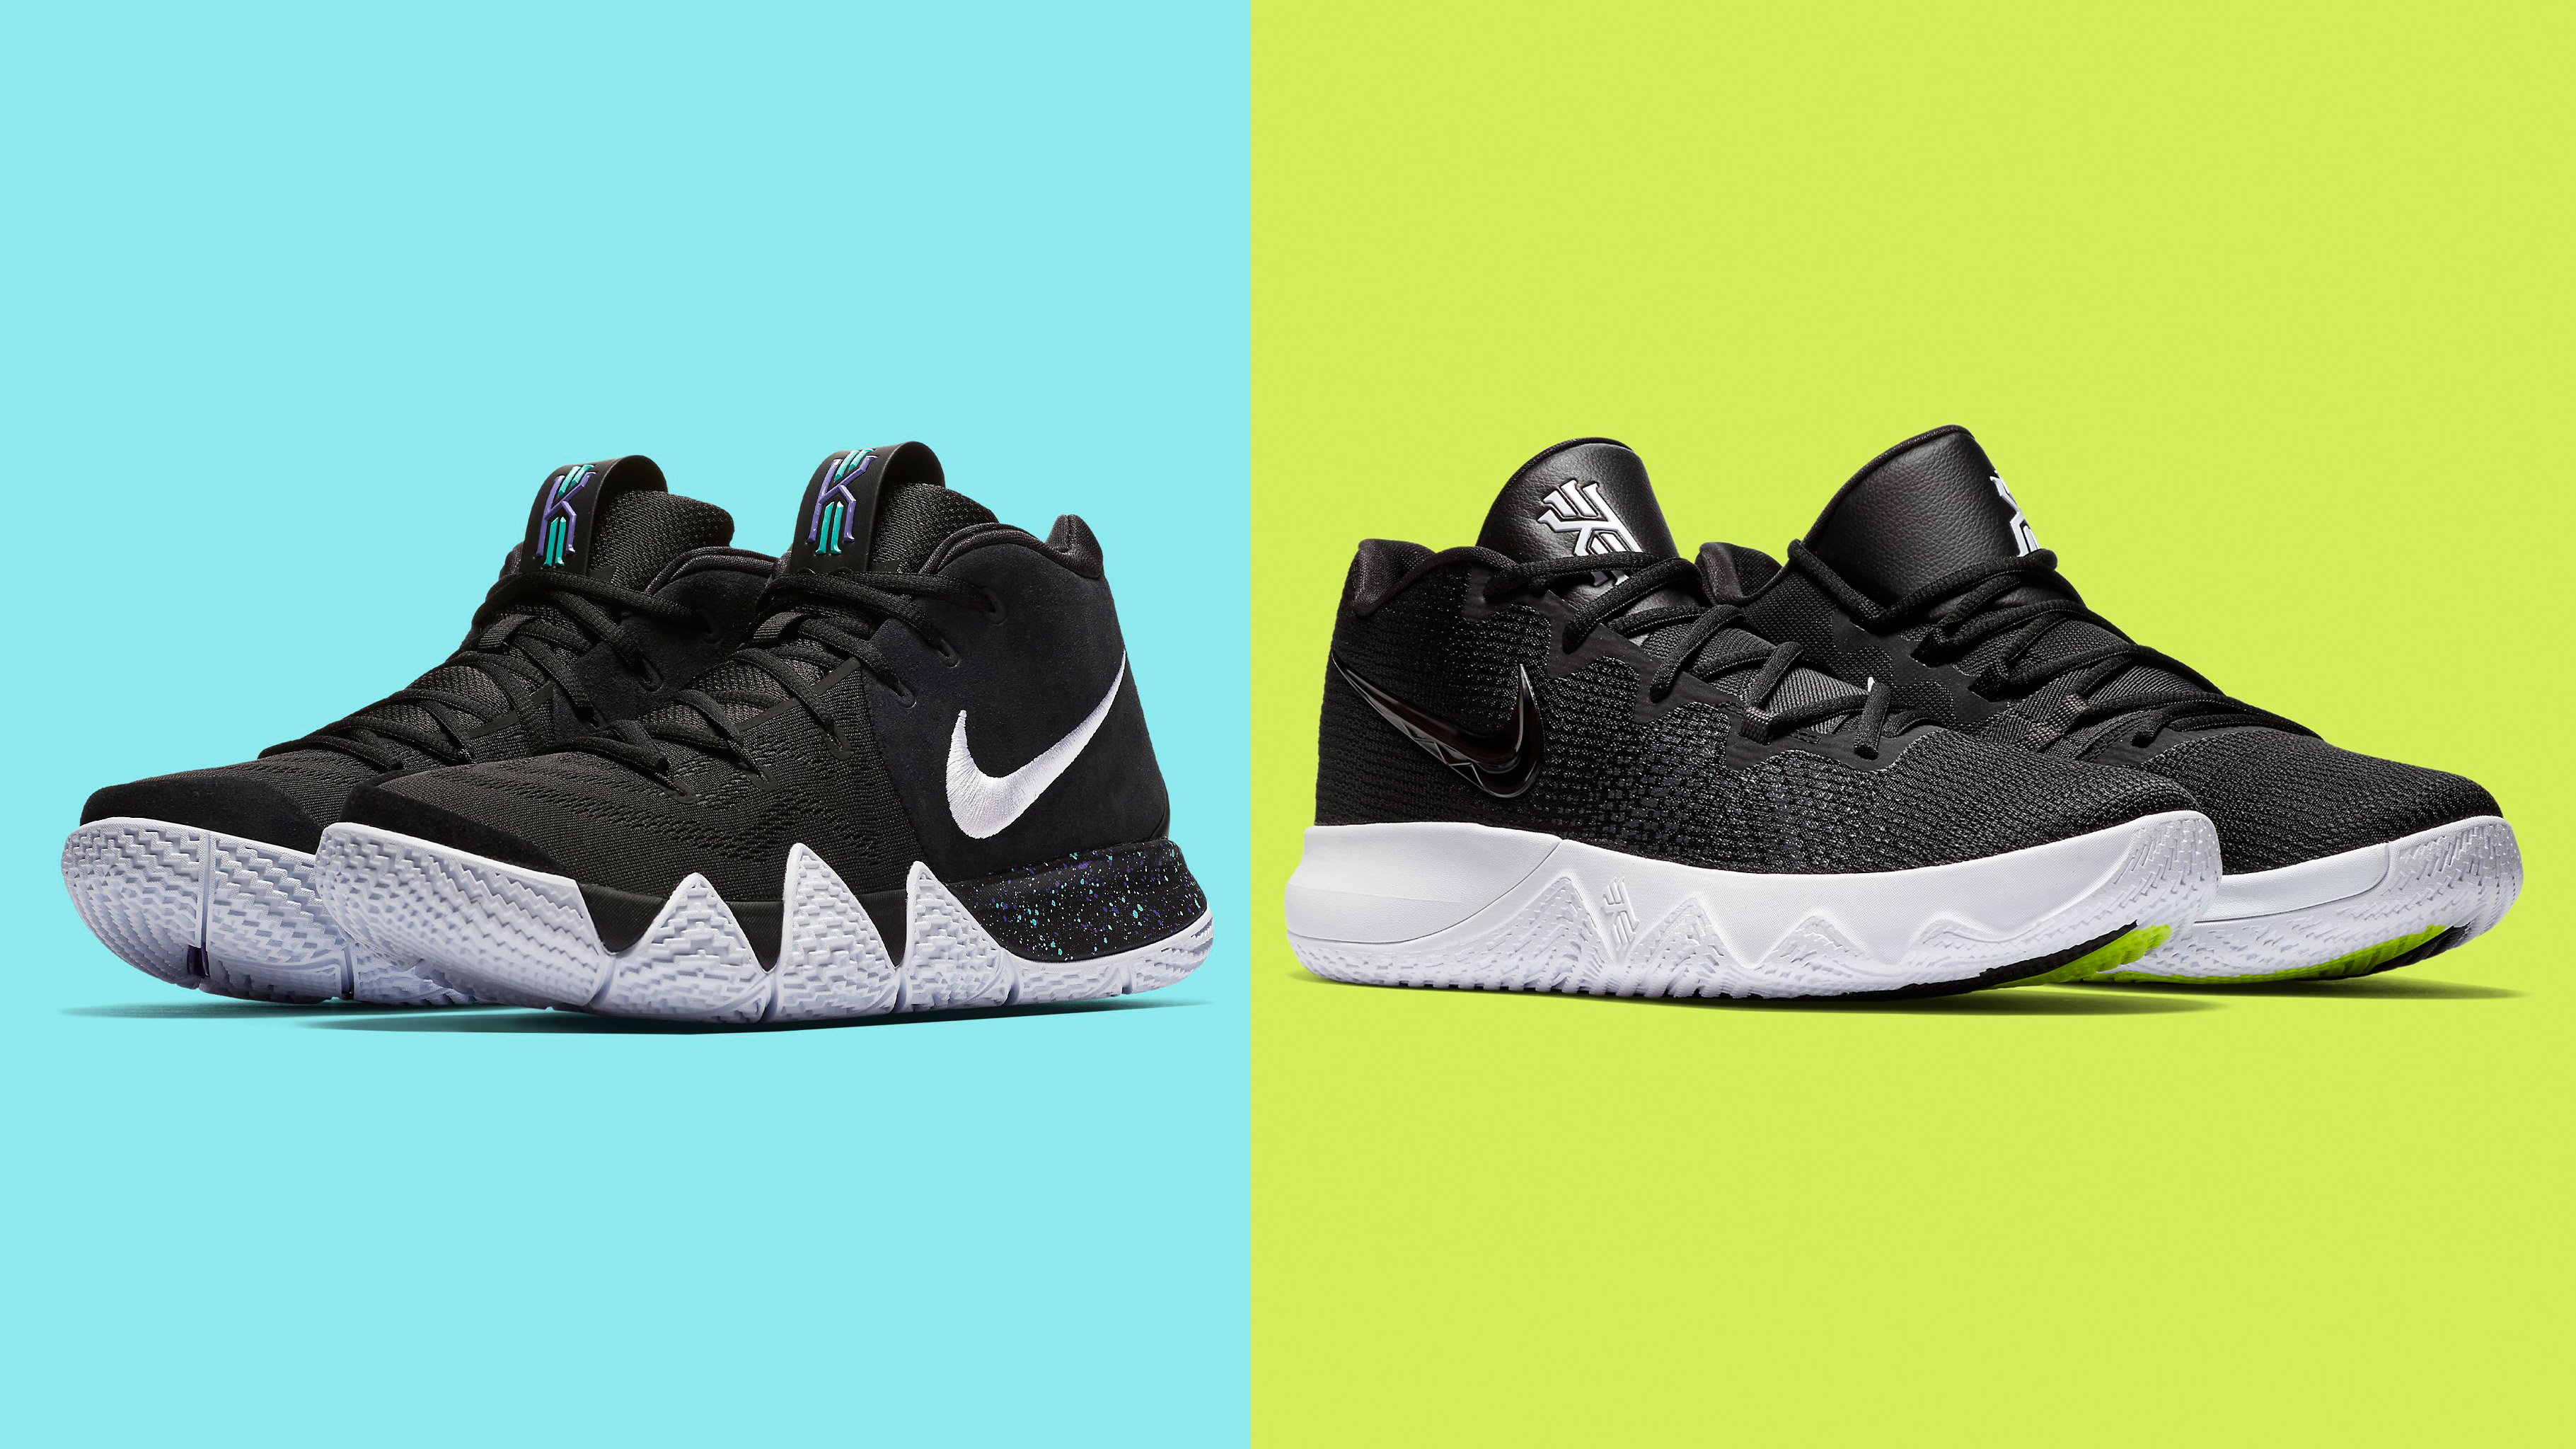 cheap for discount e3533 d5fbd Nike Kyrie 4 vs. Nike Kyrie Flytrap